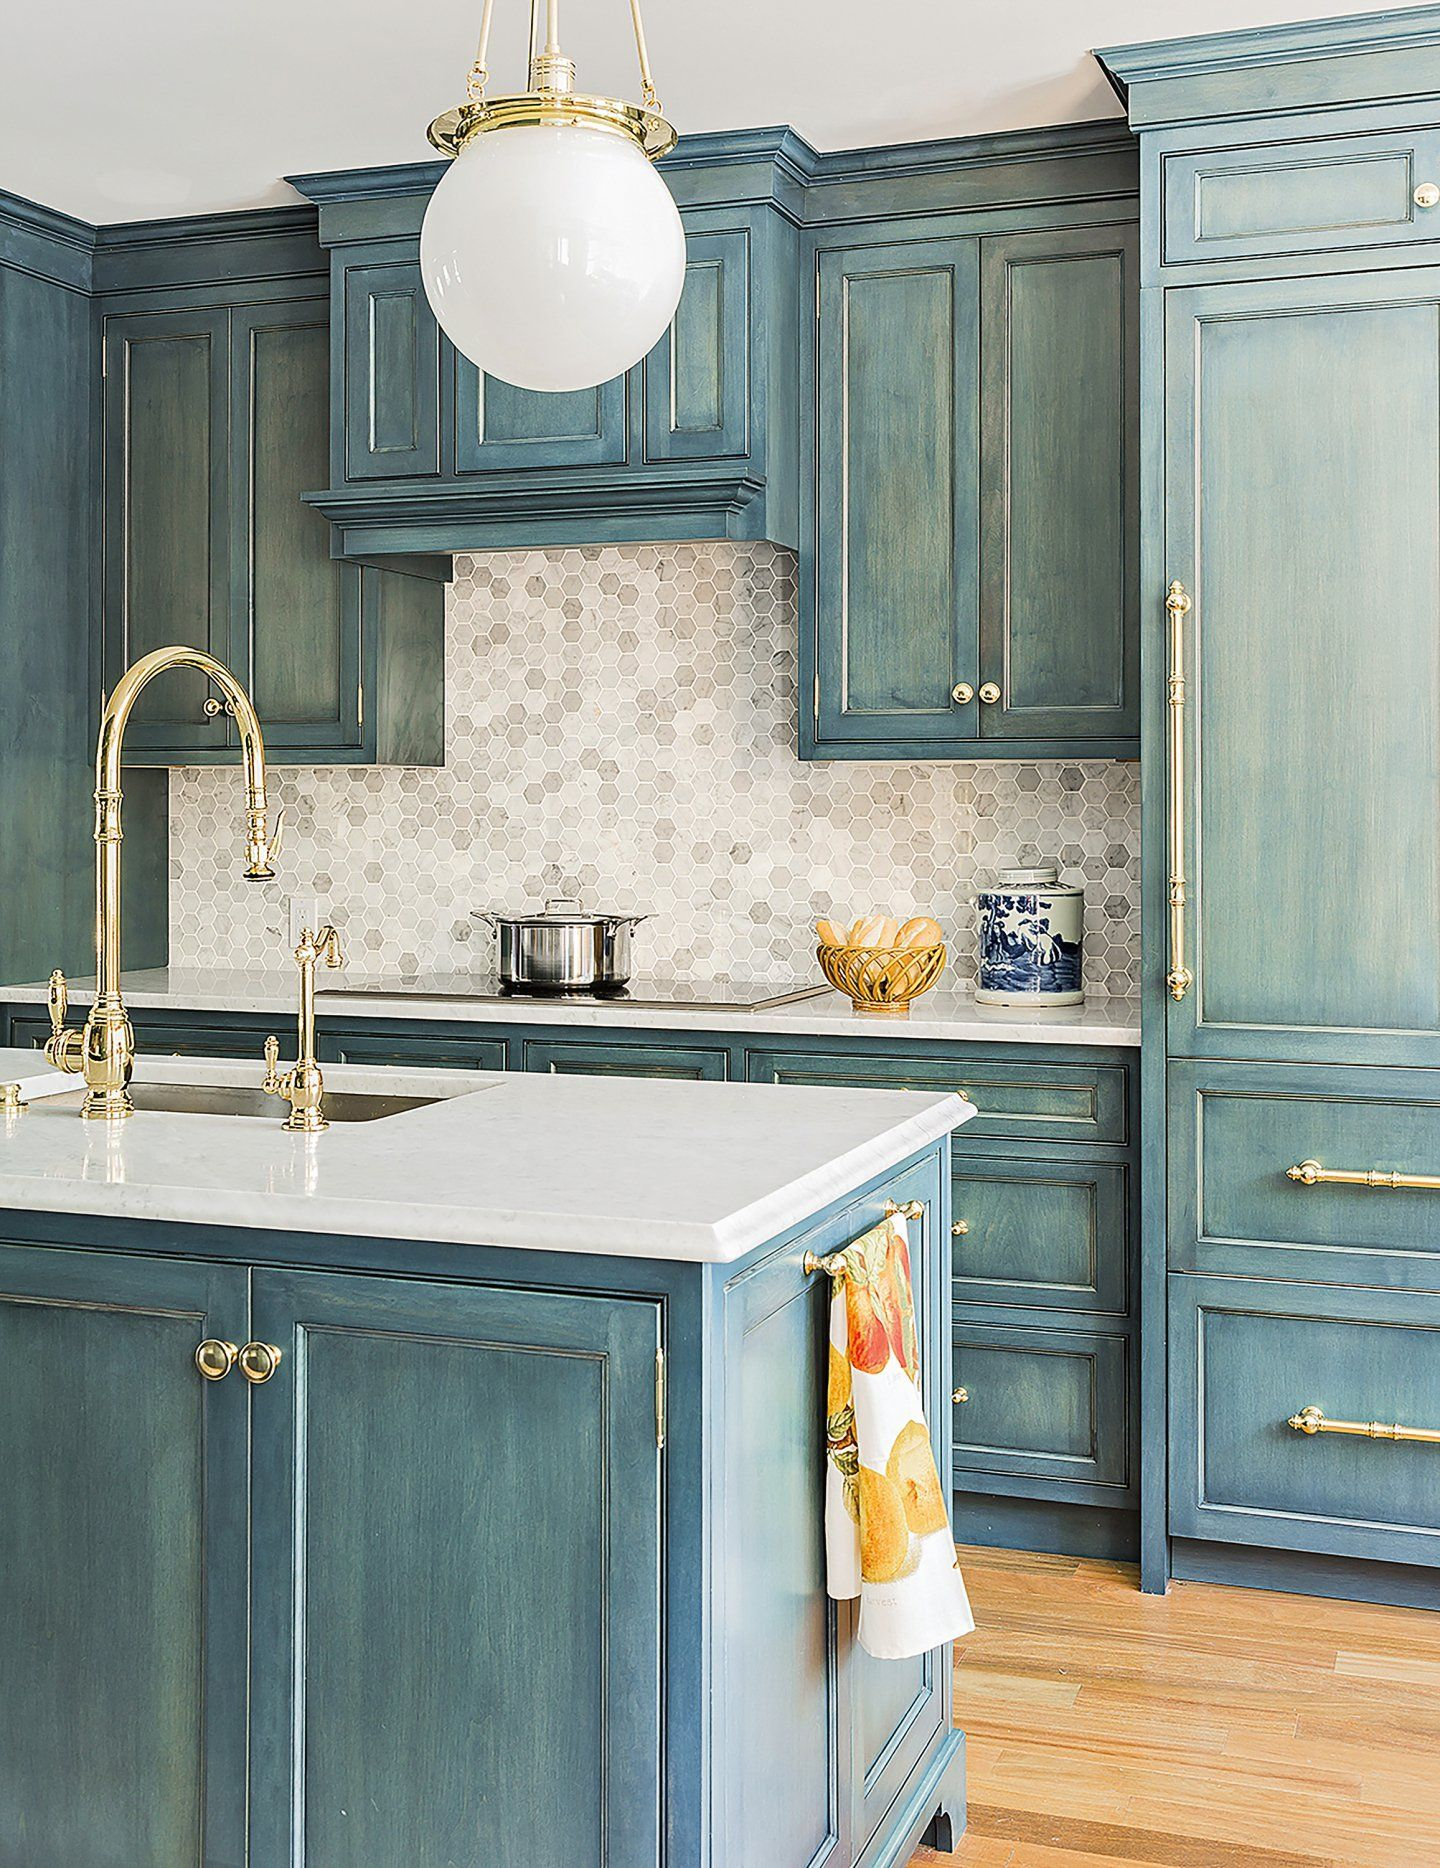 Read This Before You Paint Your Kitchen Cabinets Kitchen Cabinet Colors Blue Kitchen Cabinets Kitchen Design